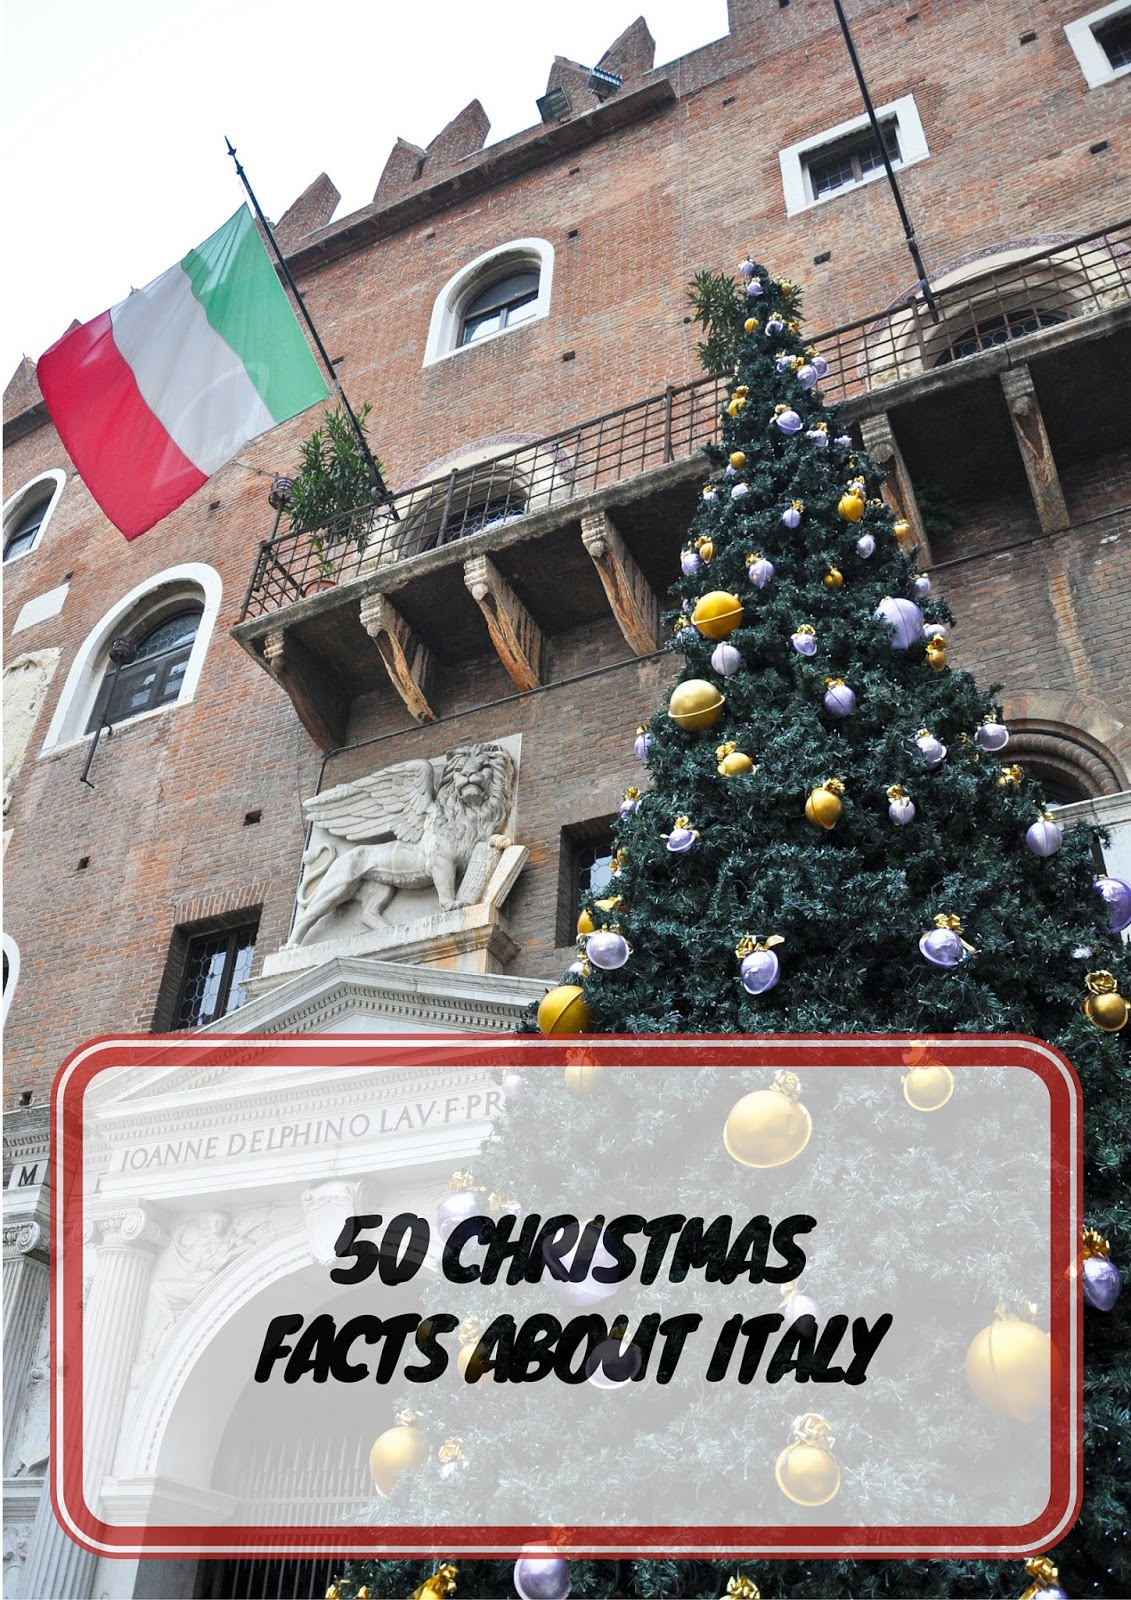 50 Christmas Facts About Italy - Second Part